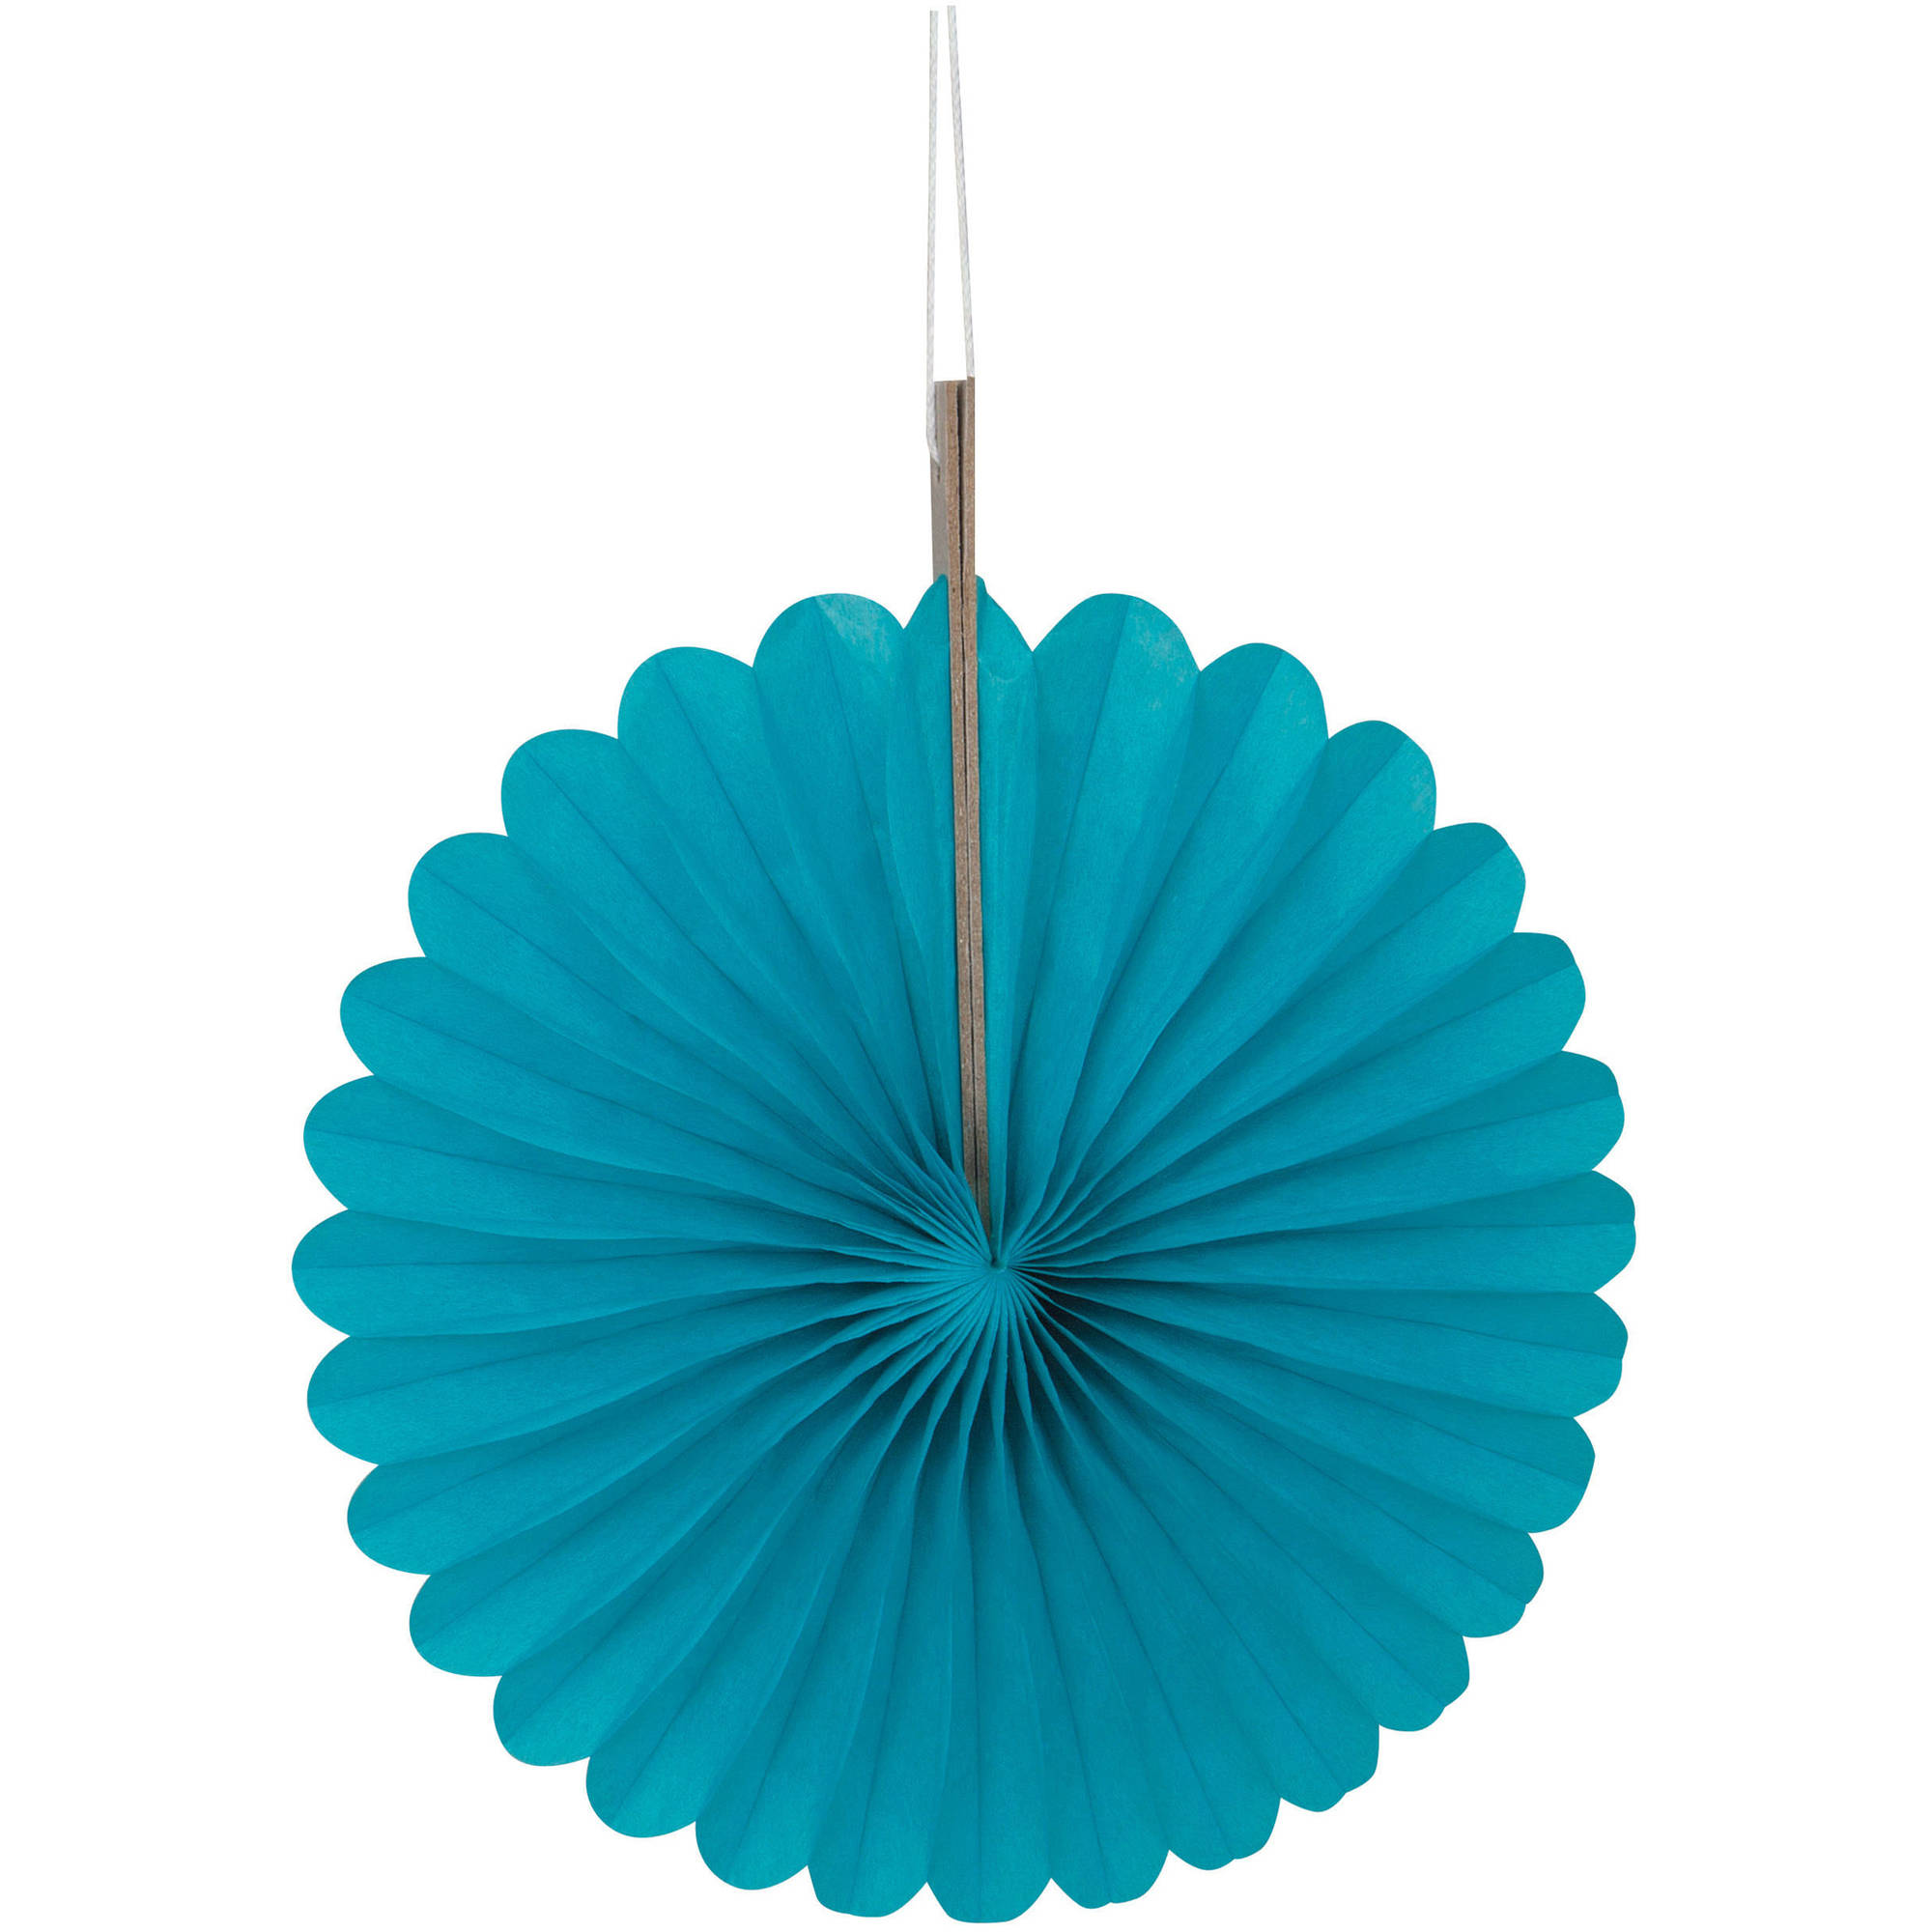 Tissue Paper Fan Decorations, 6 in, Teal, 3ct